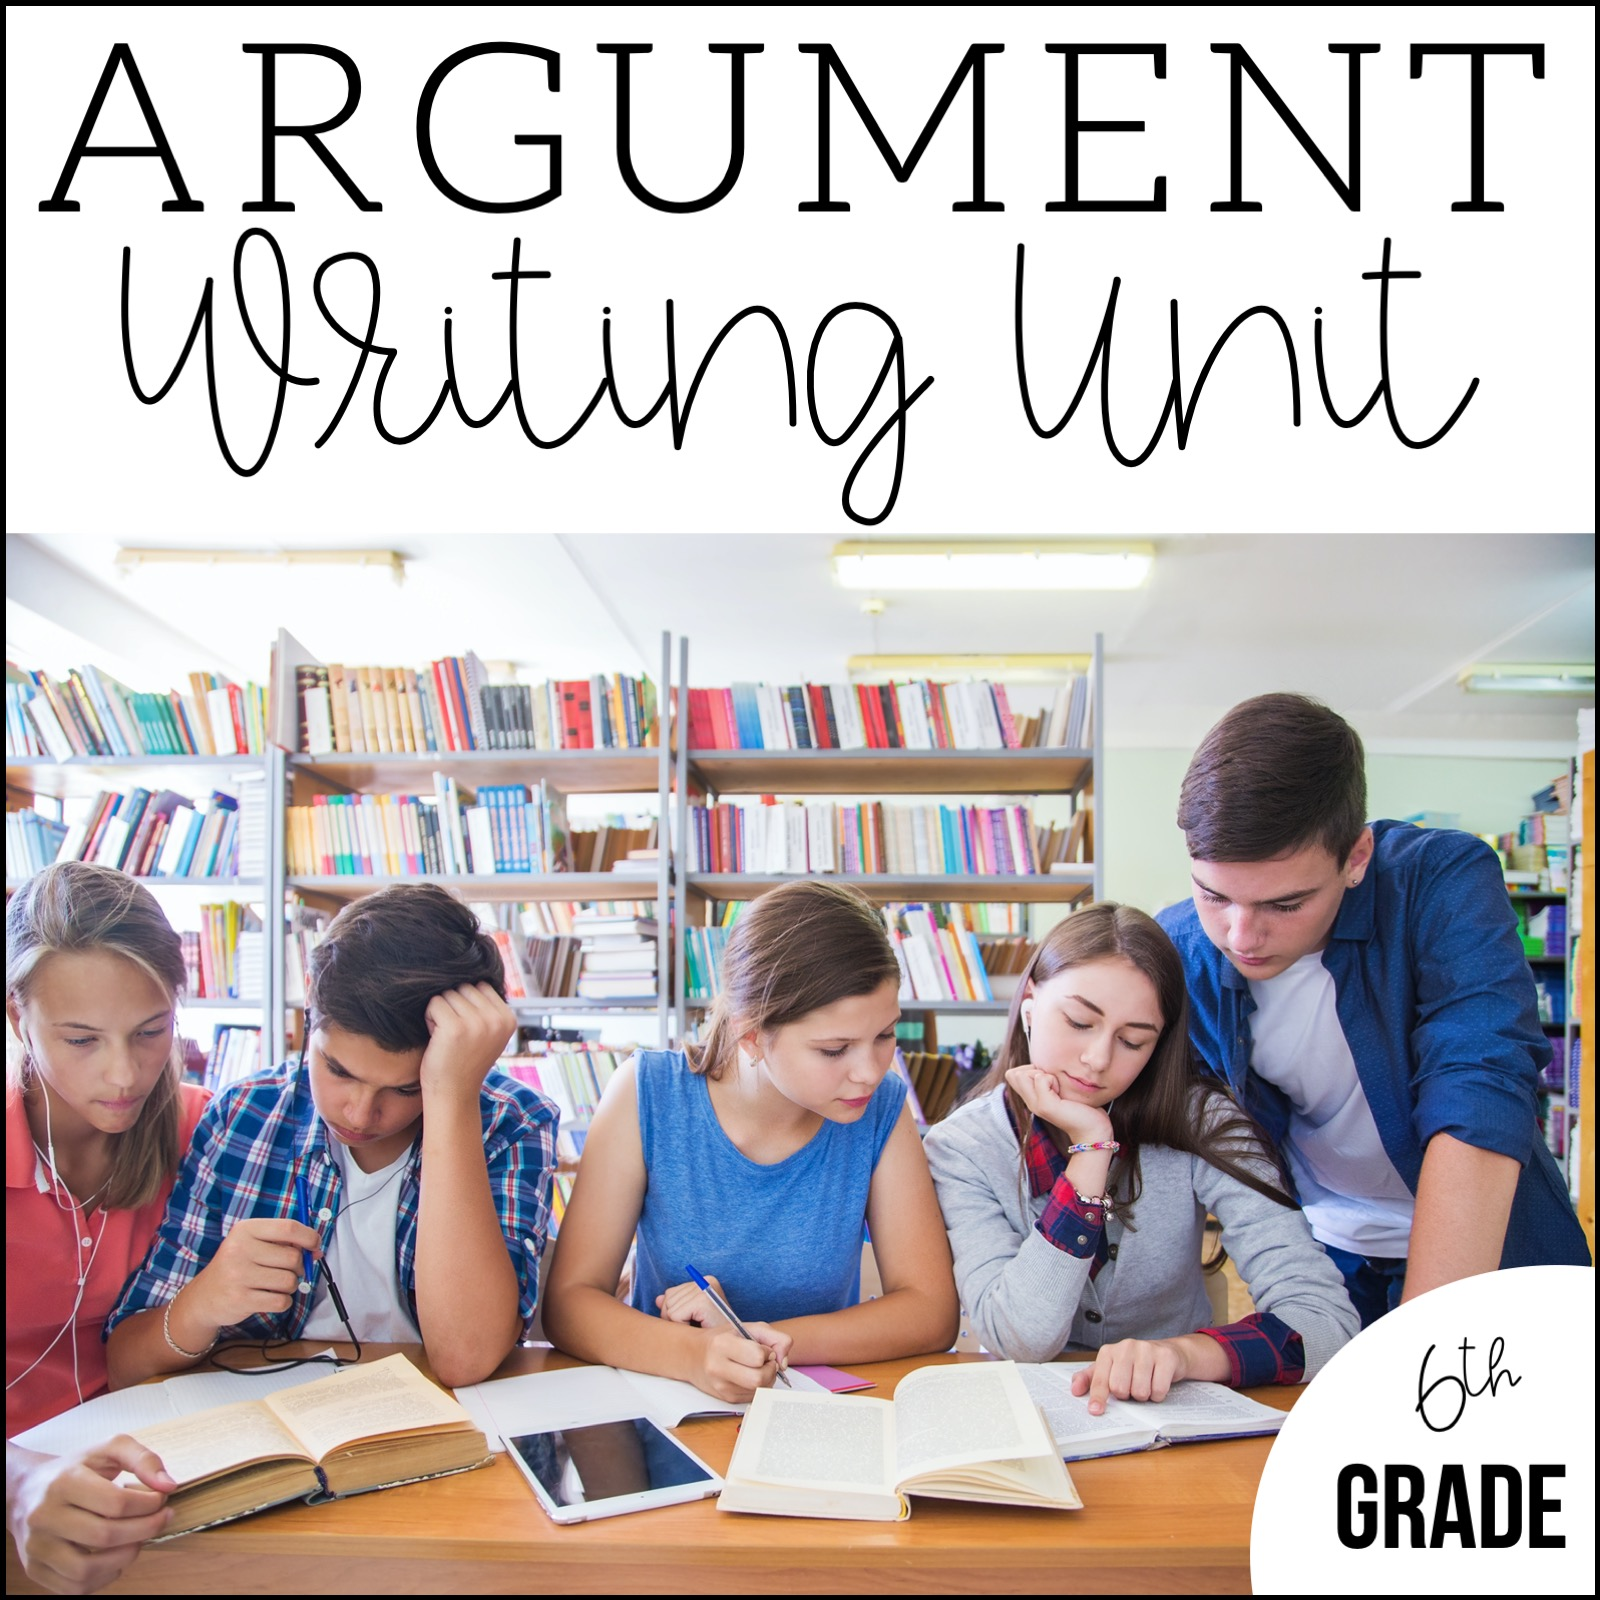 Students working together on research for the argument writing unit